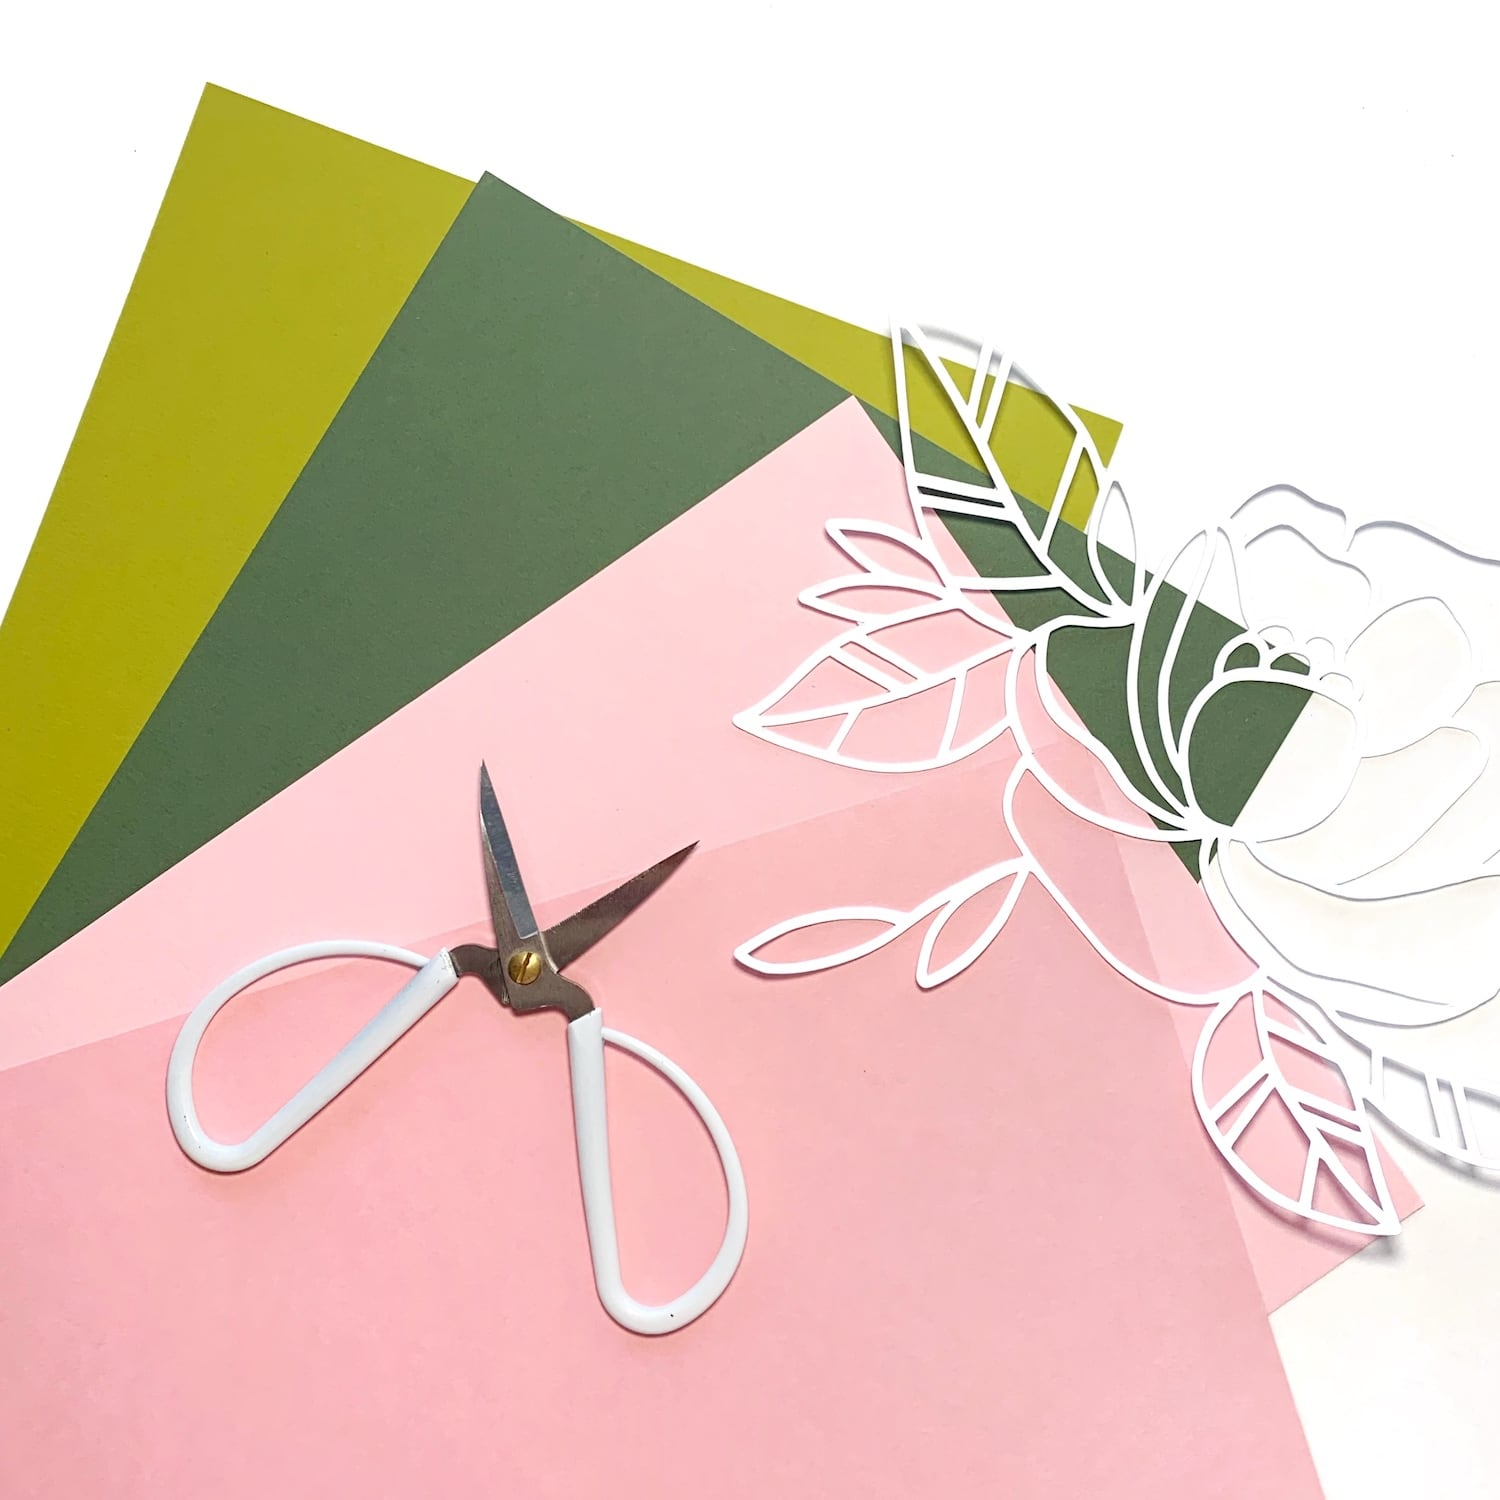 Chartreuse, Mid-Green, Candy Pink, and Bubblegum papers